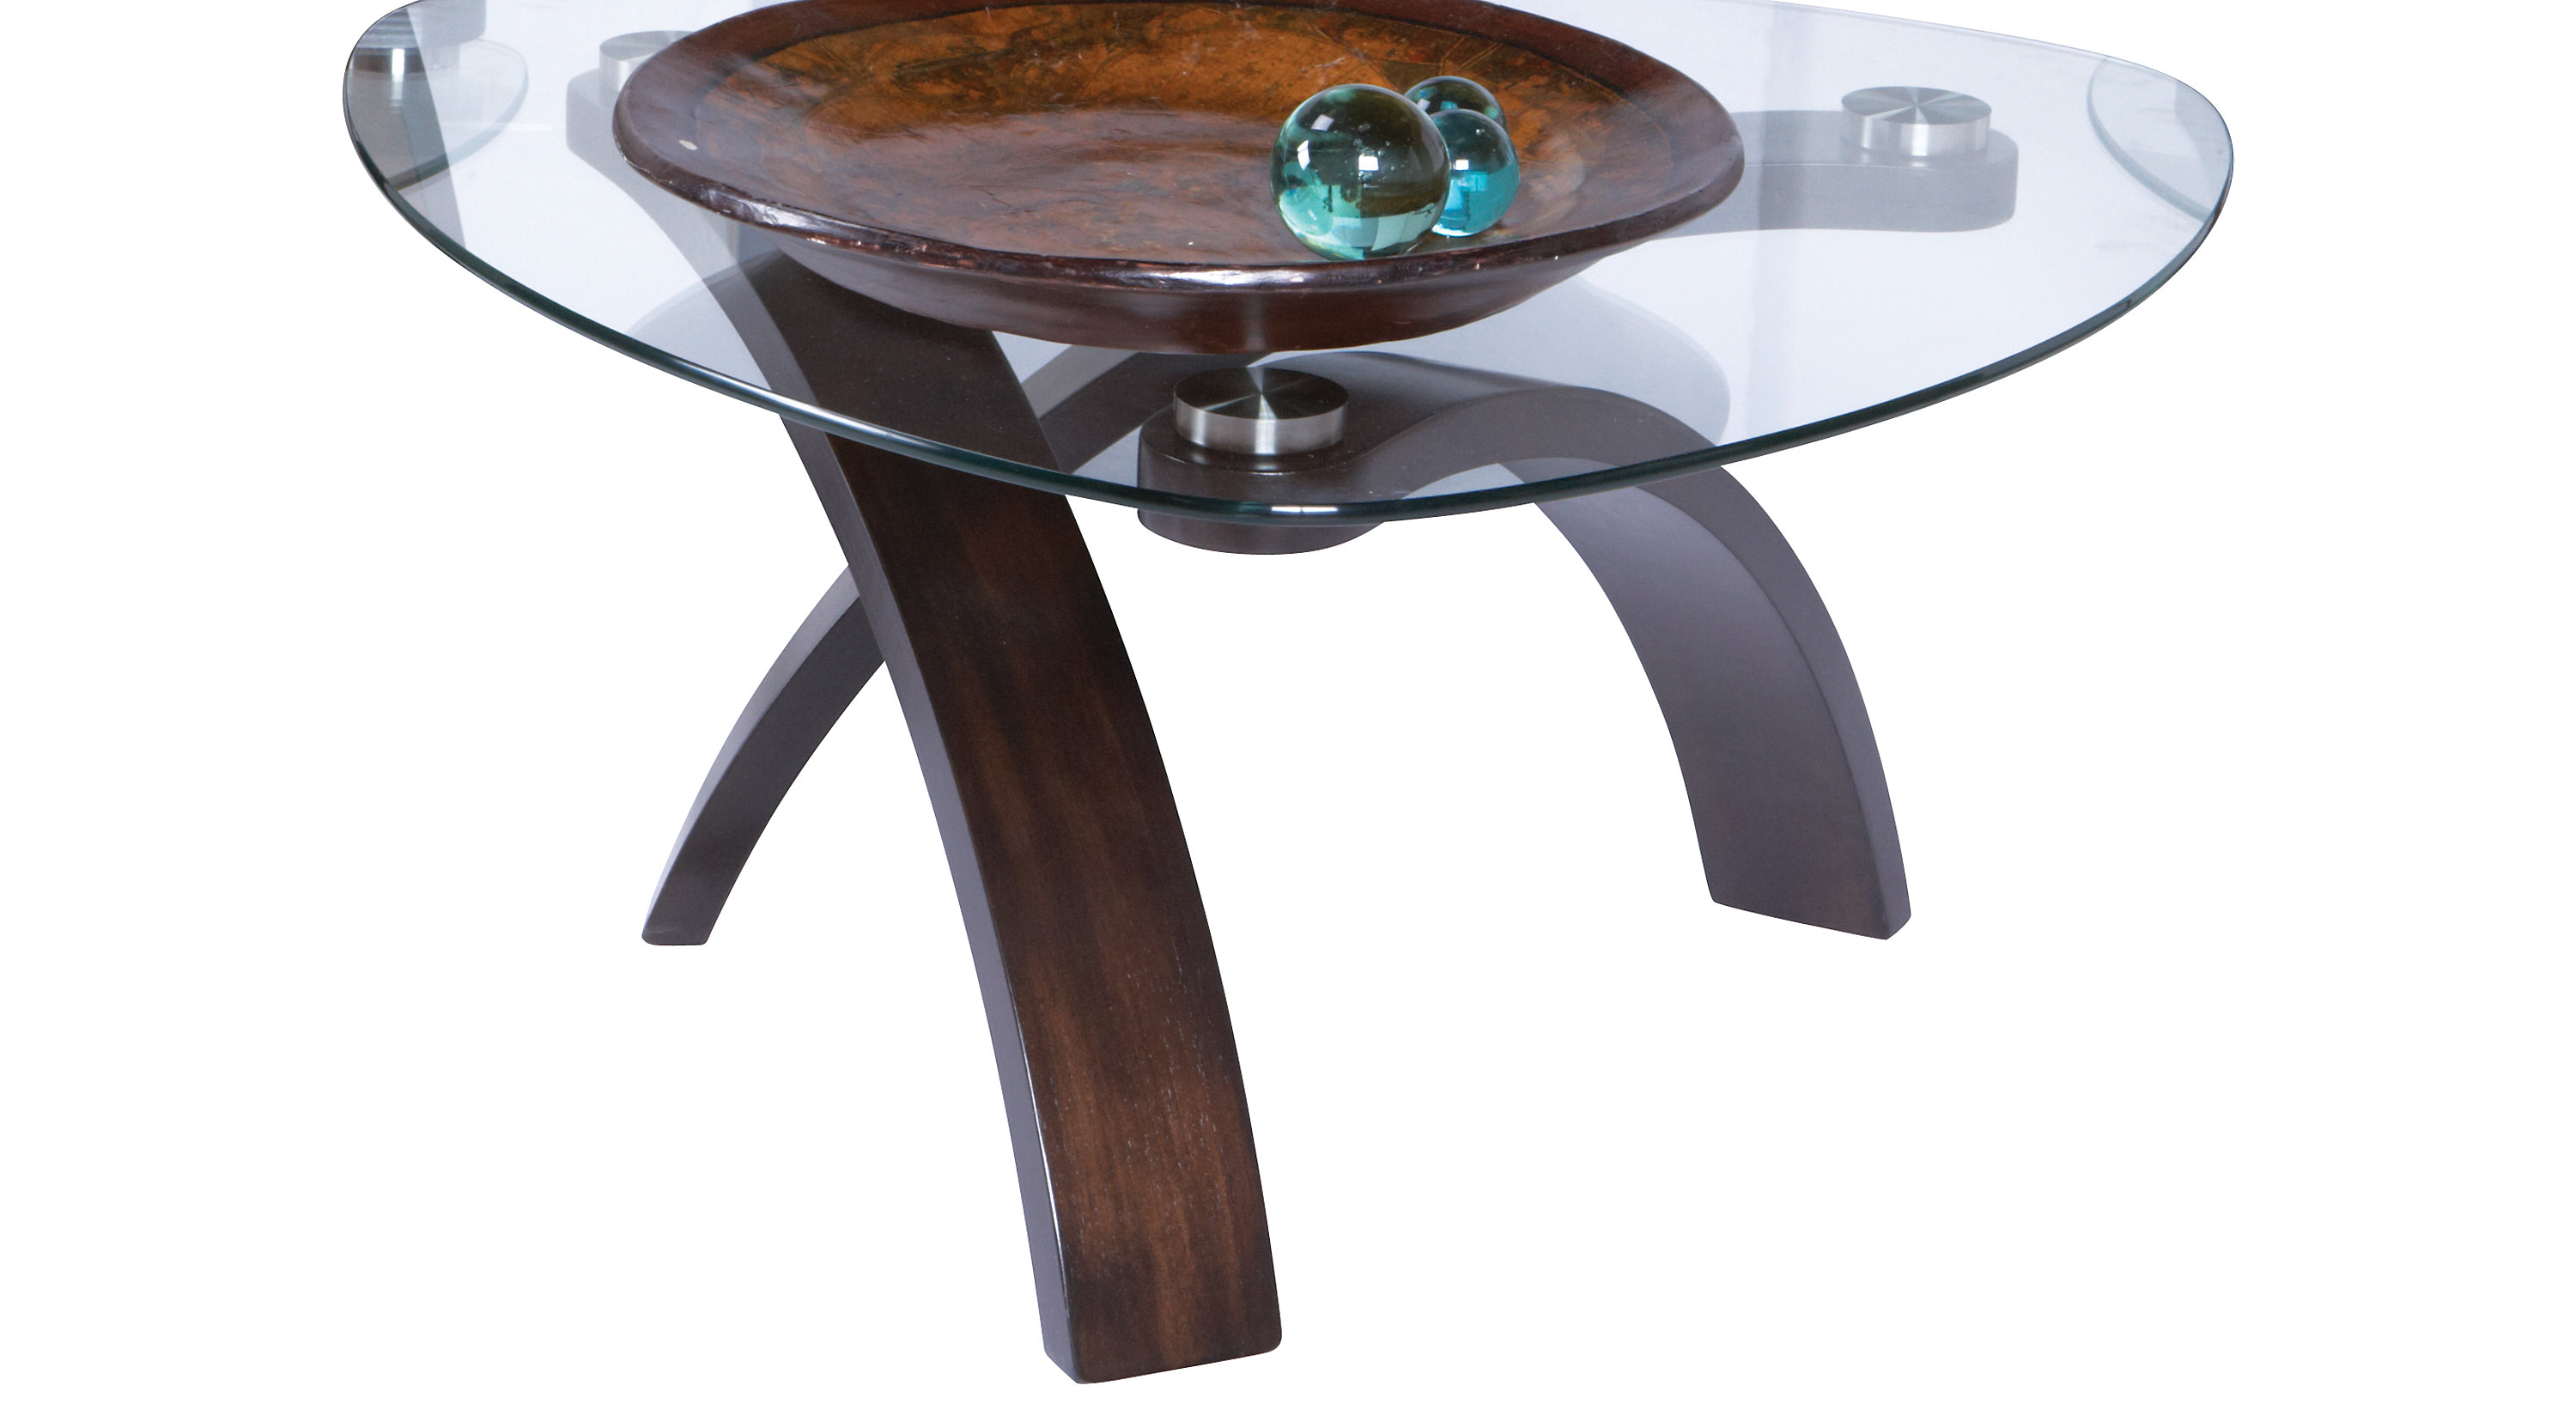 Grant City Merlot Reddish Brown Cocktail Table Glass Top Contemporary